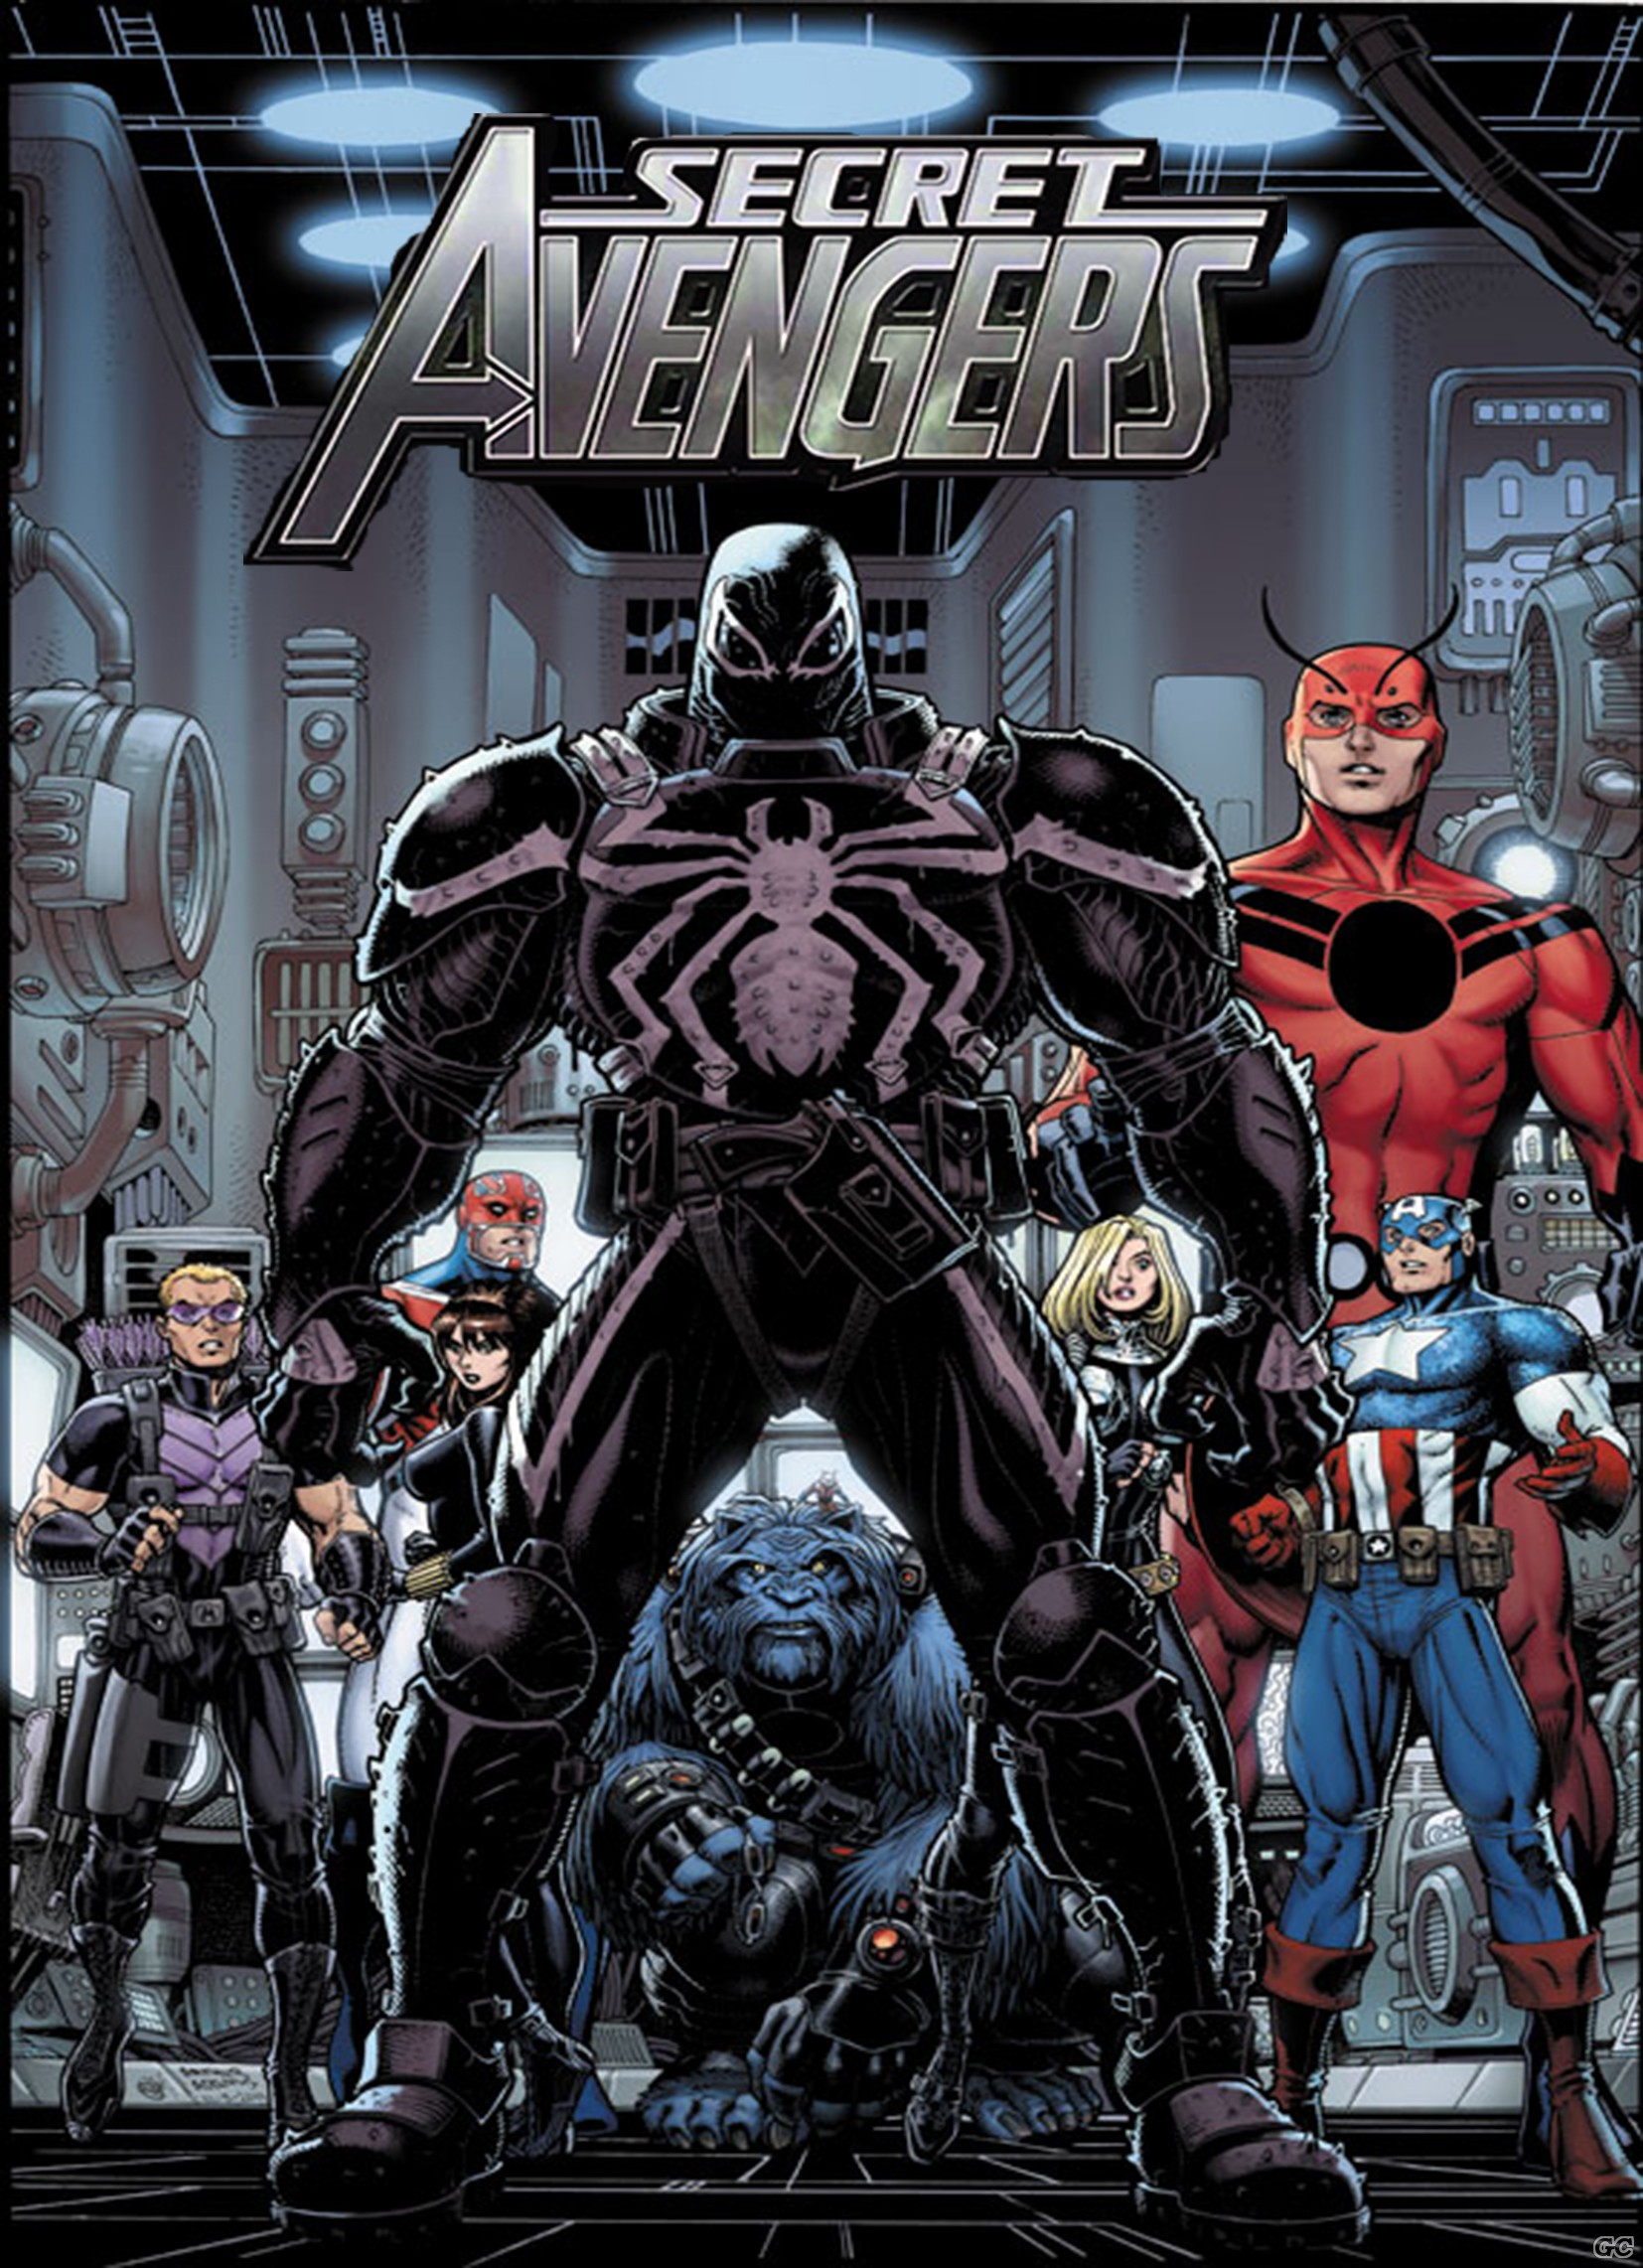 SECRET AVENGERS (RICK REMENDER-MATTEO SCALERA-PATRICK ZIRCHER)